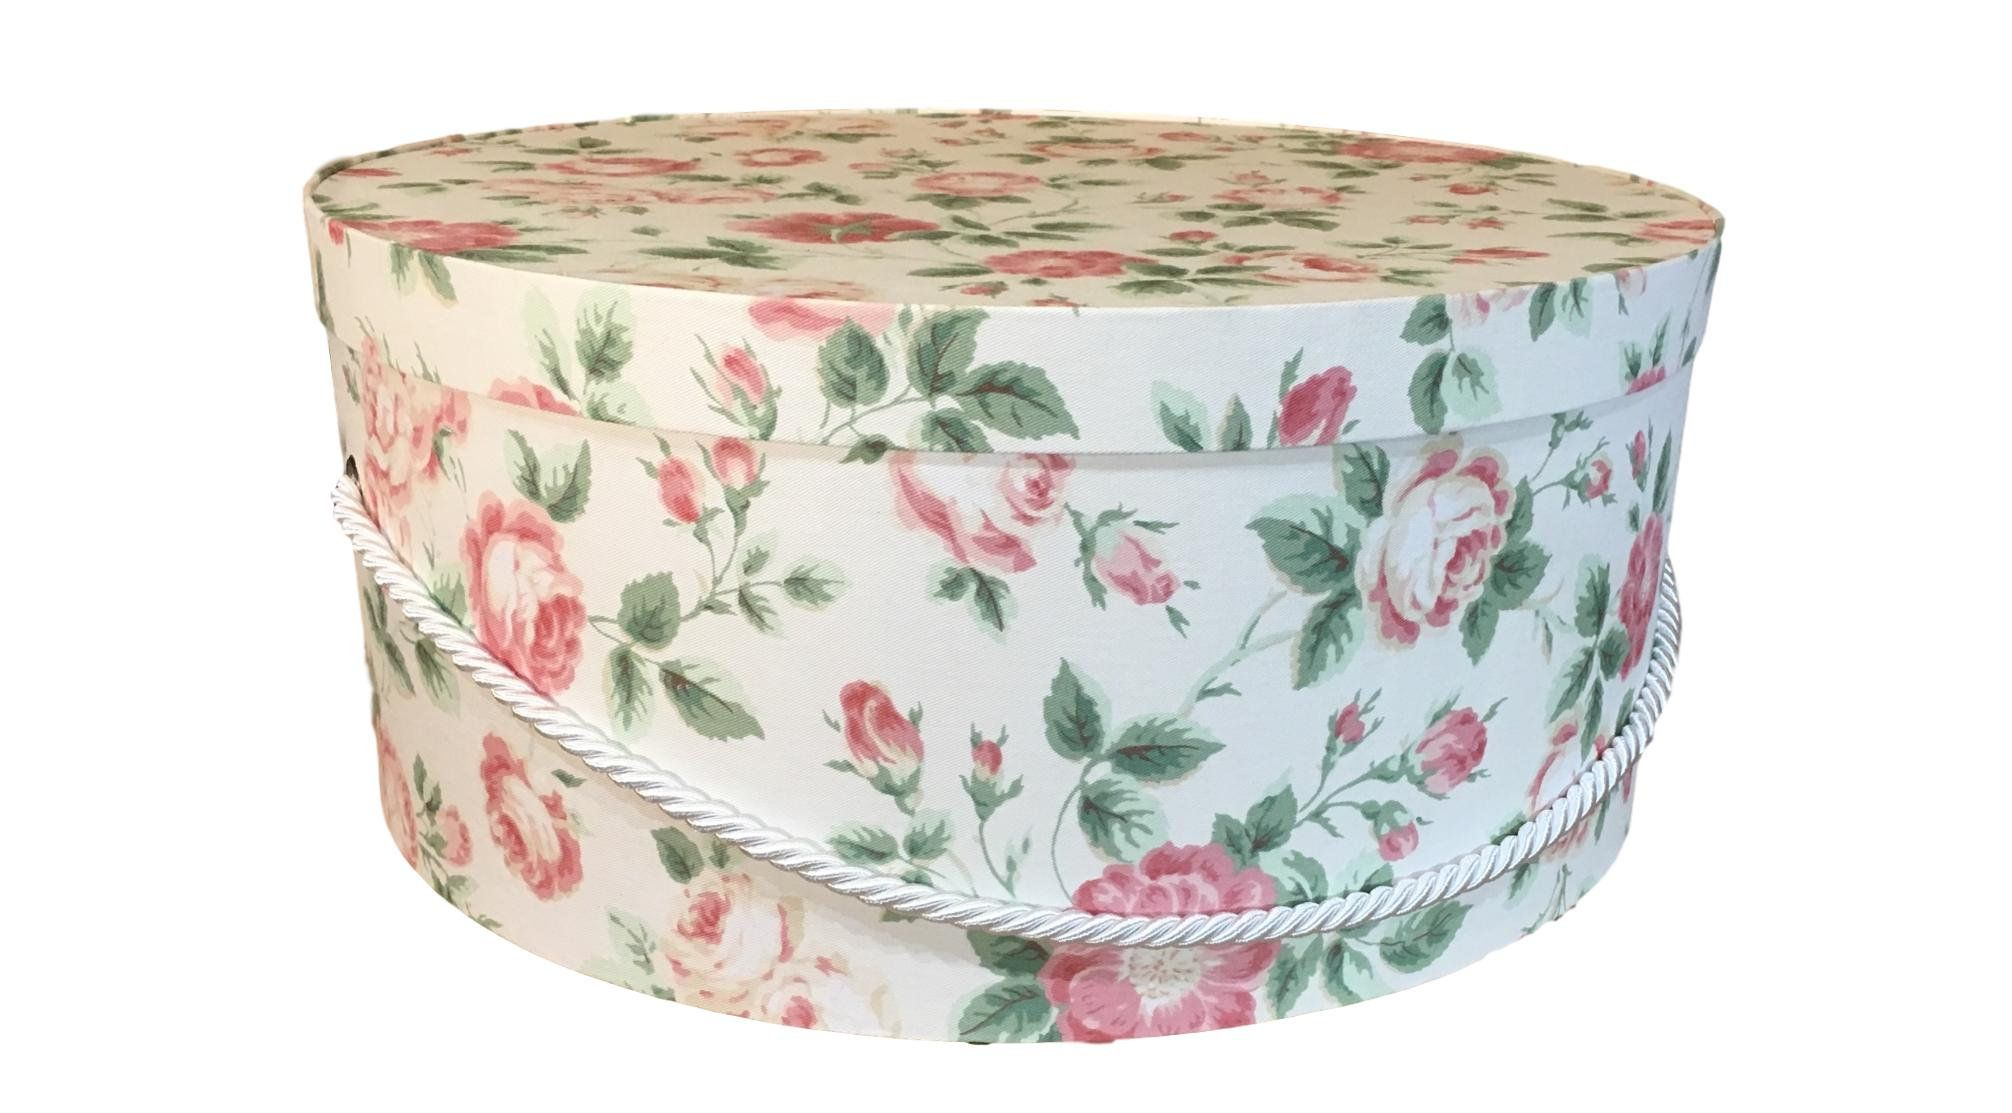 Extra Large Hat Box In Pink Floral Large Decorative Fabric Covered Hat Boxes Round Storage Box Keepsake Boxes With Lid Nest Hat Box Fabric Decor Large Hats